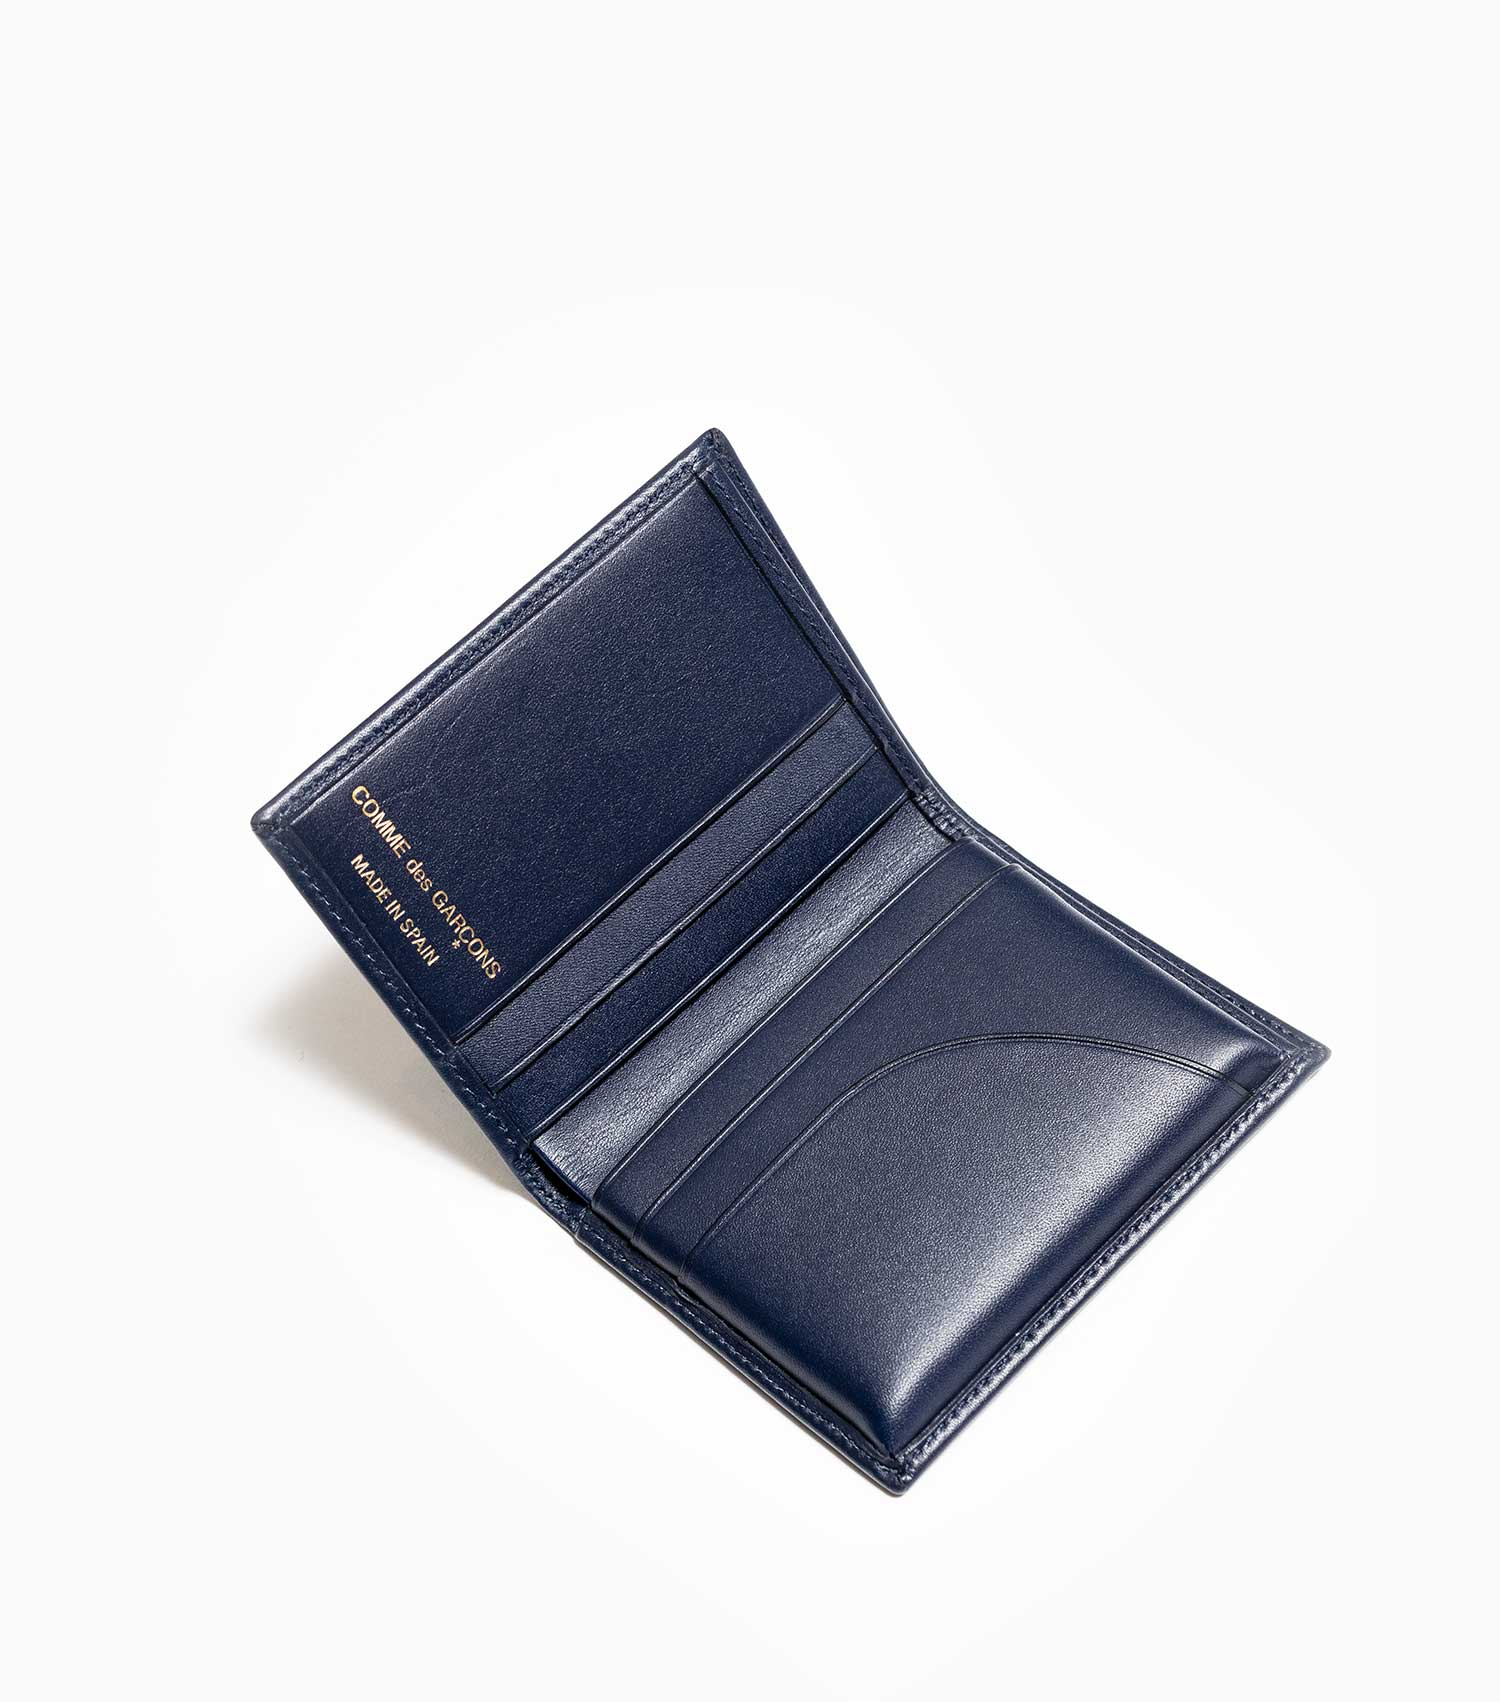 Comme des Garçons Classic Leather Line A Wallet SA0641 - Navy Wallet - CARTOCON